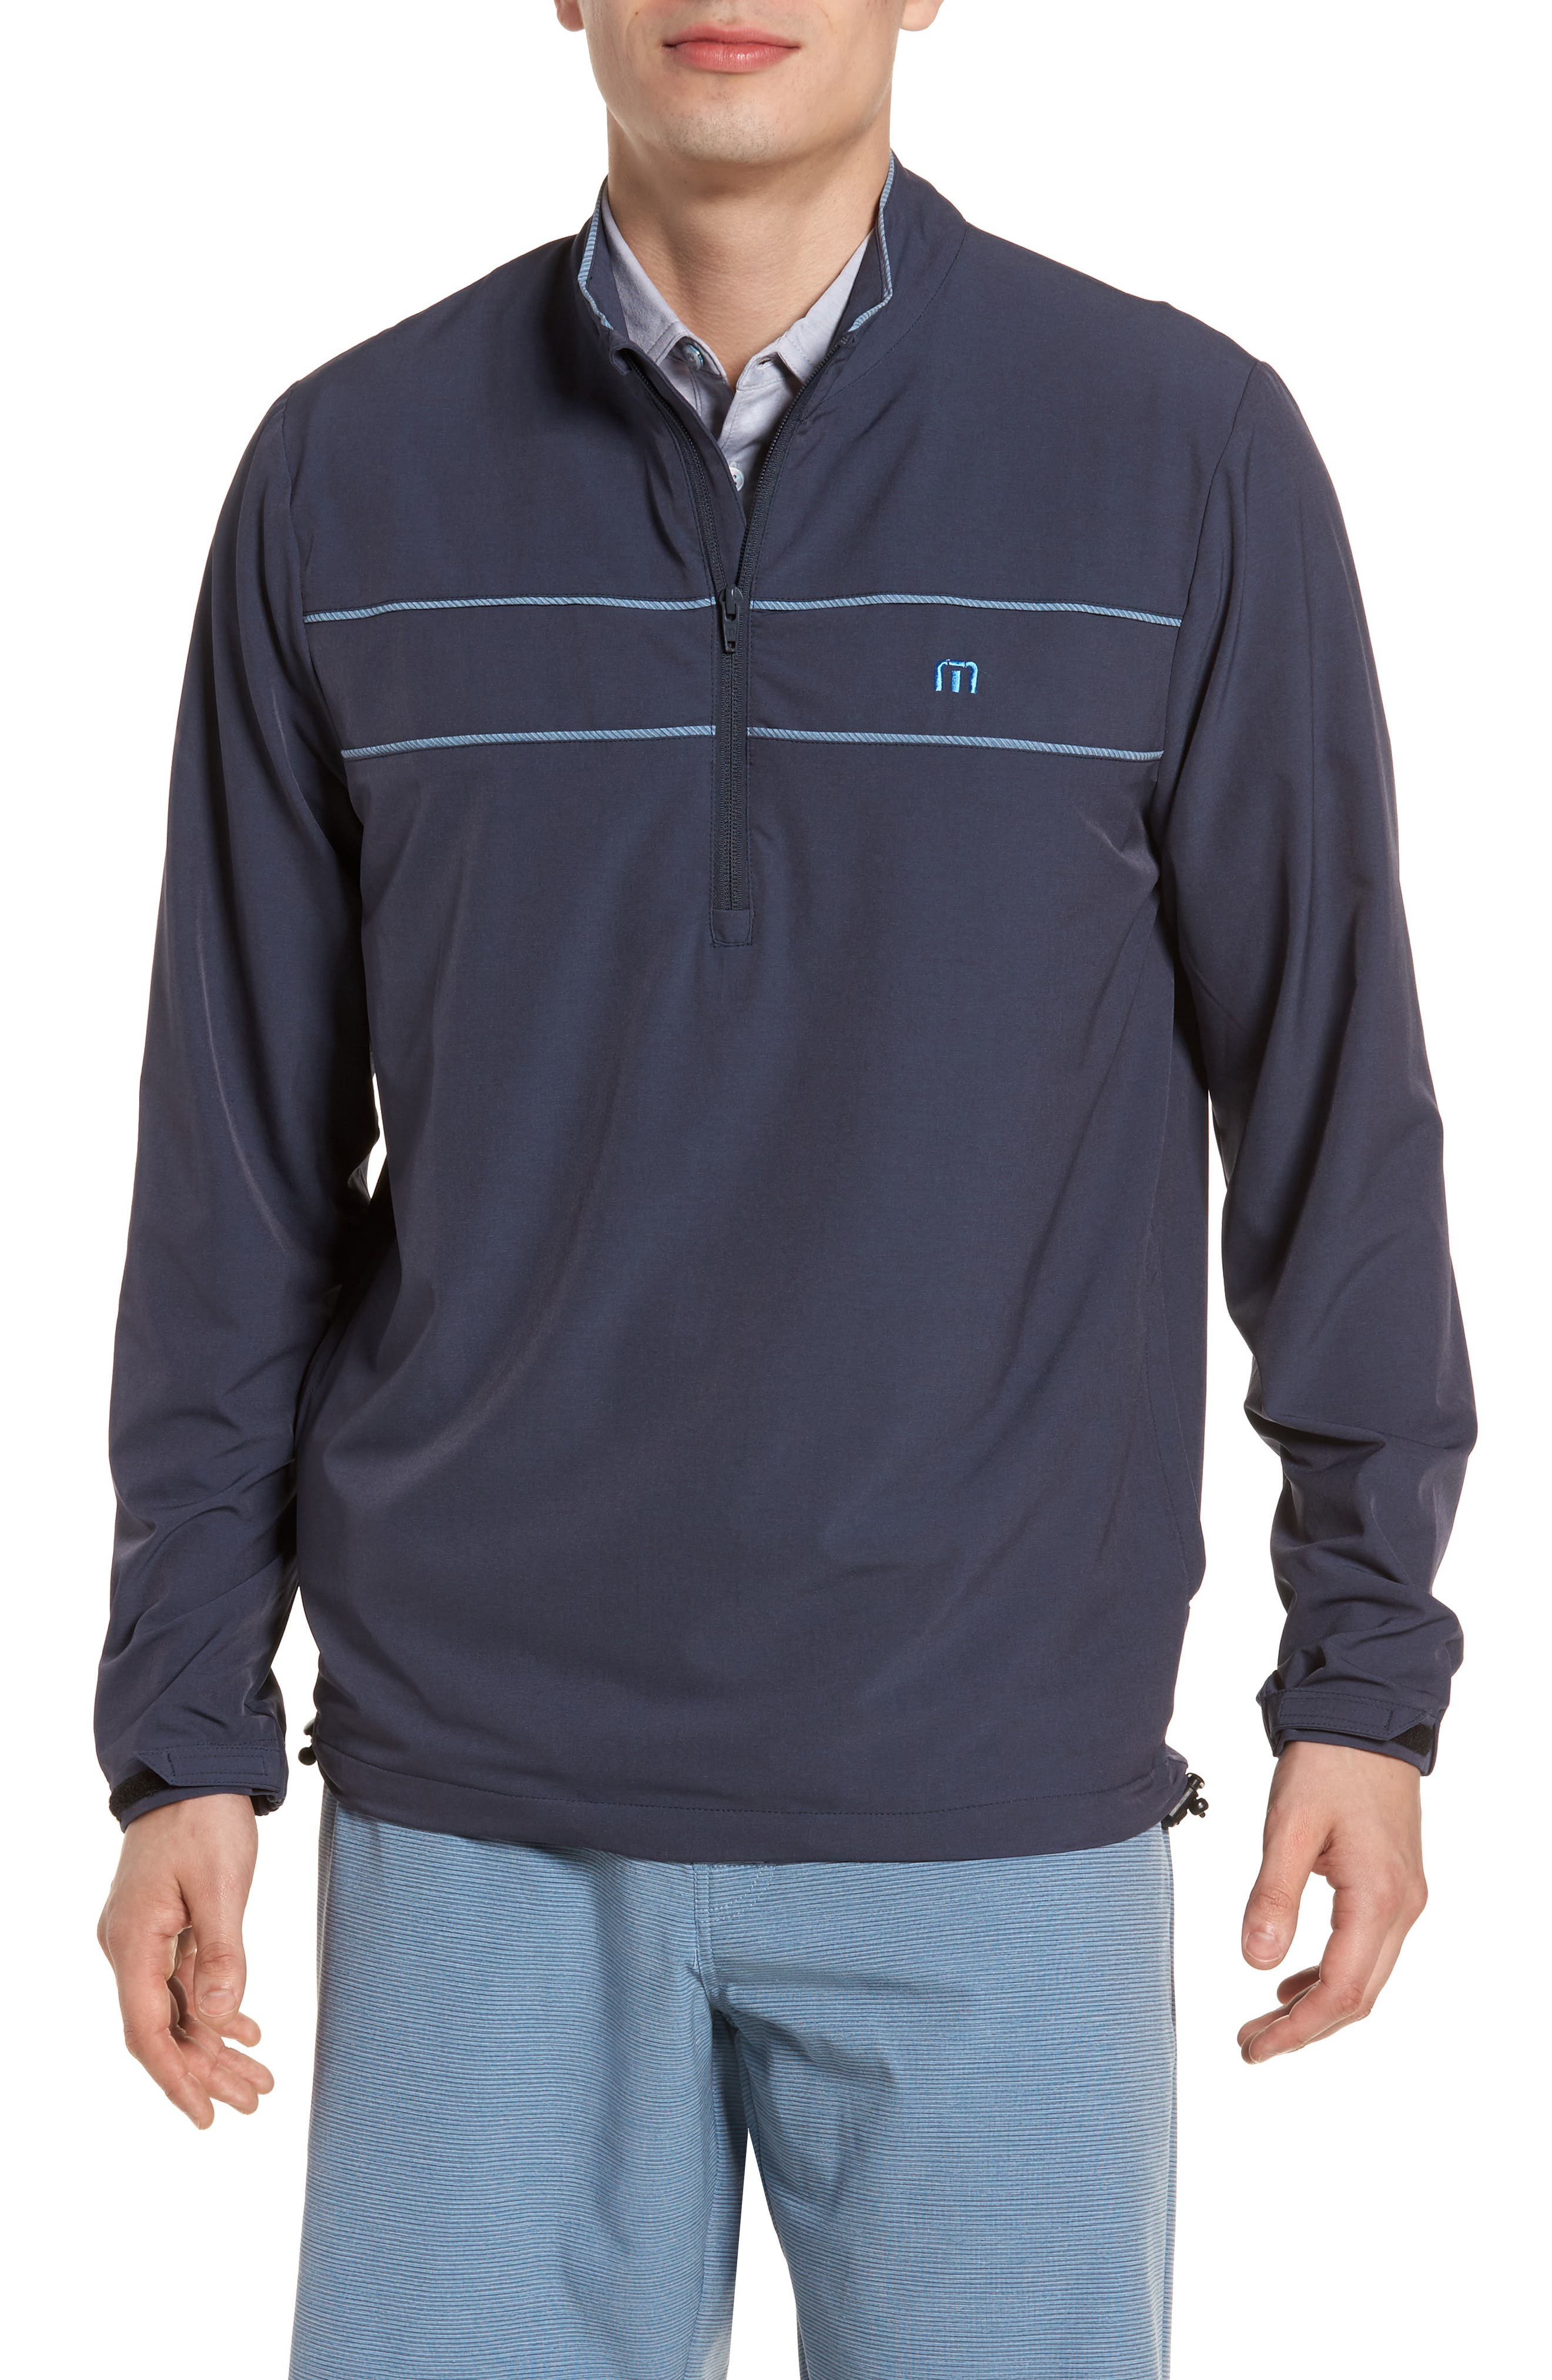 Leon Half Zip Pullover,                             Main thumbnail 1, color,                             Blue Nights/ French Blue